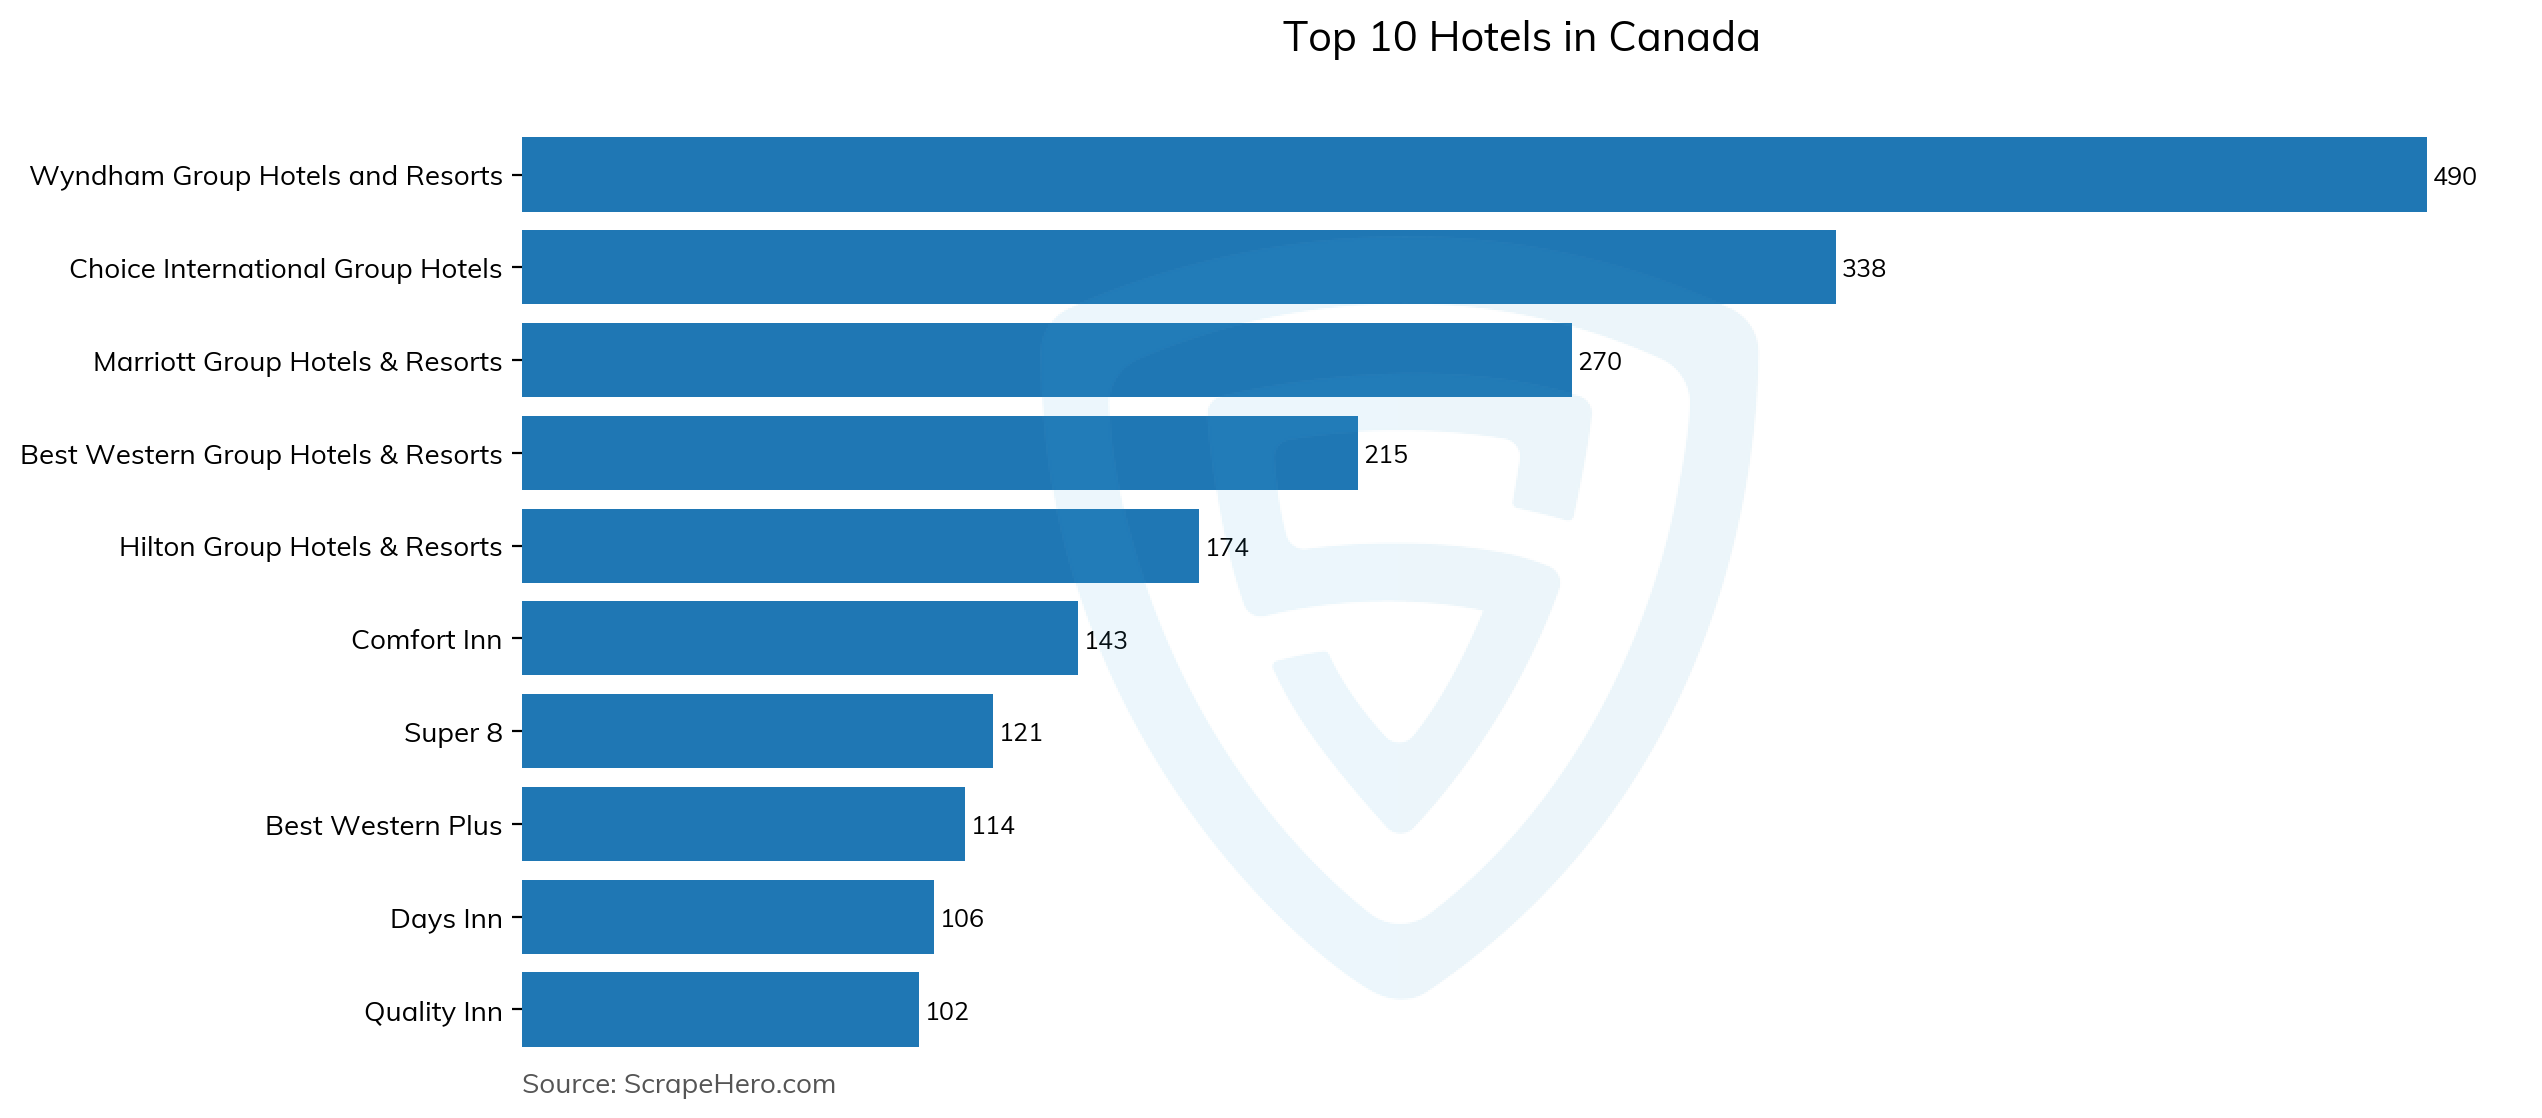 Bar chart of top 10 hotels in canada in 2021